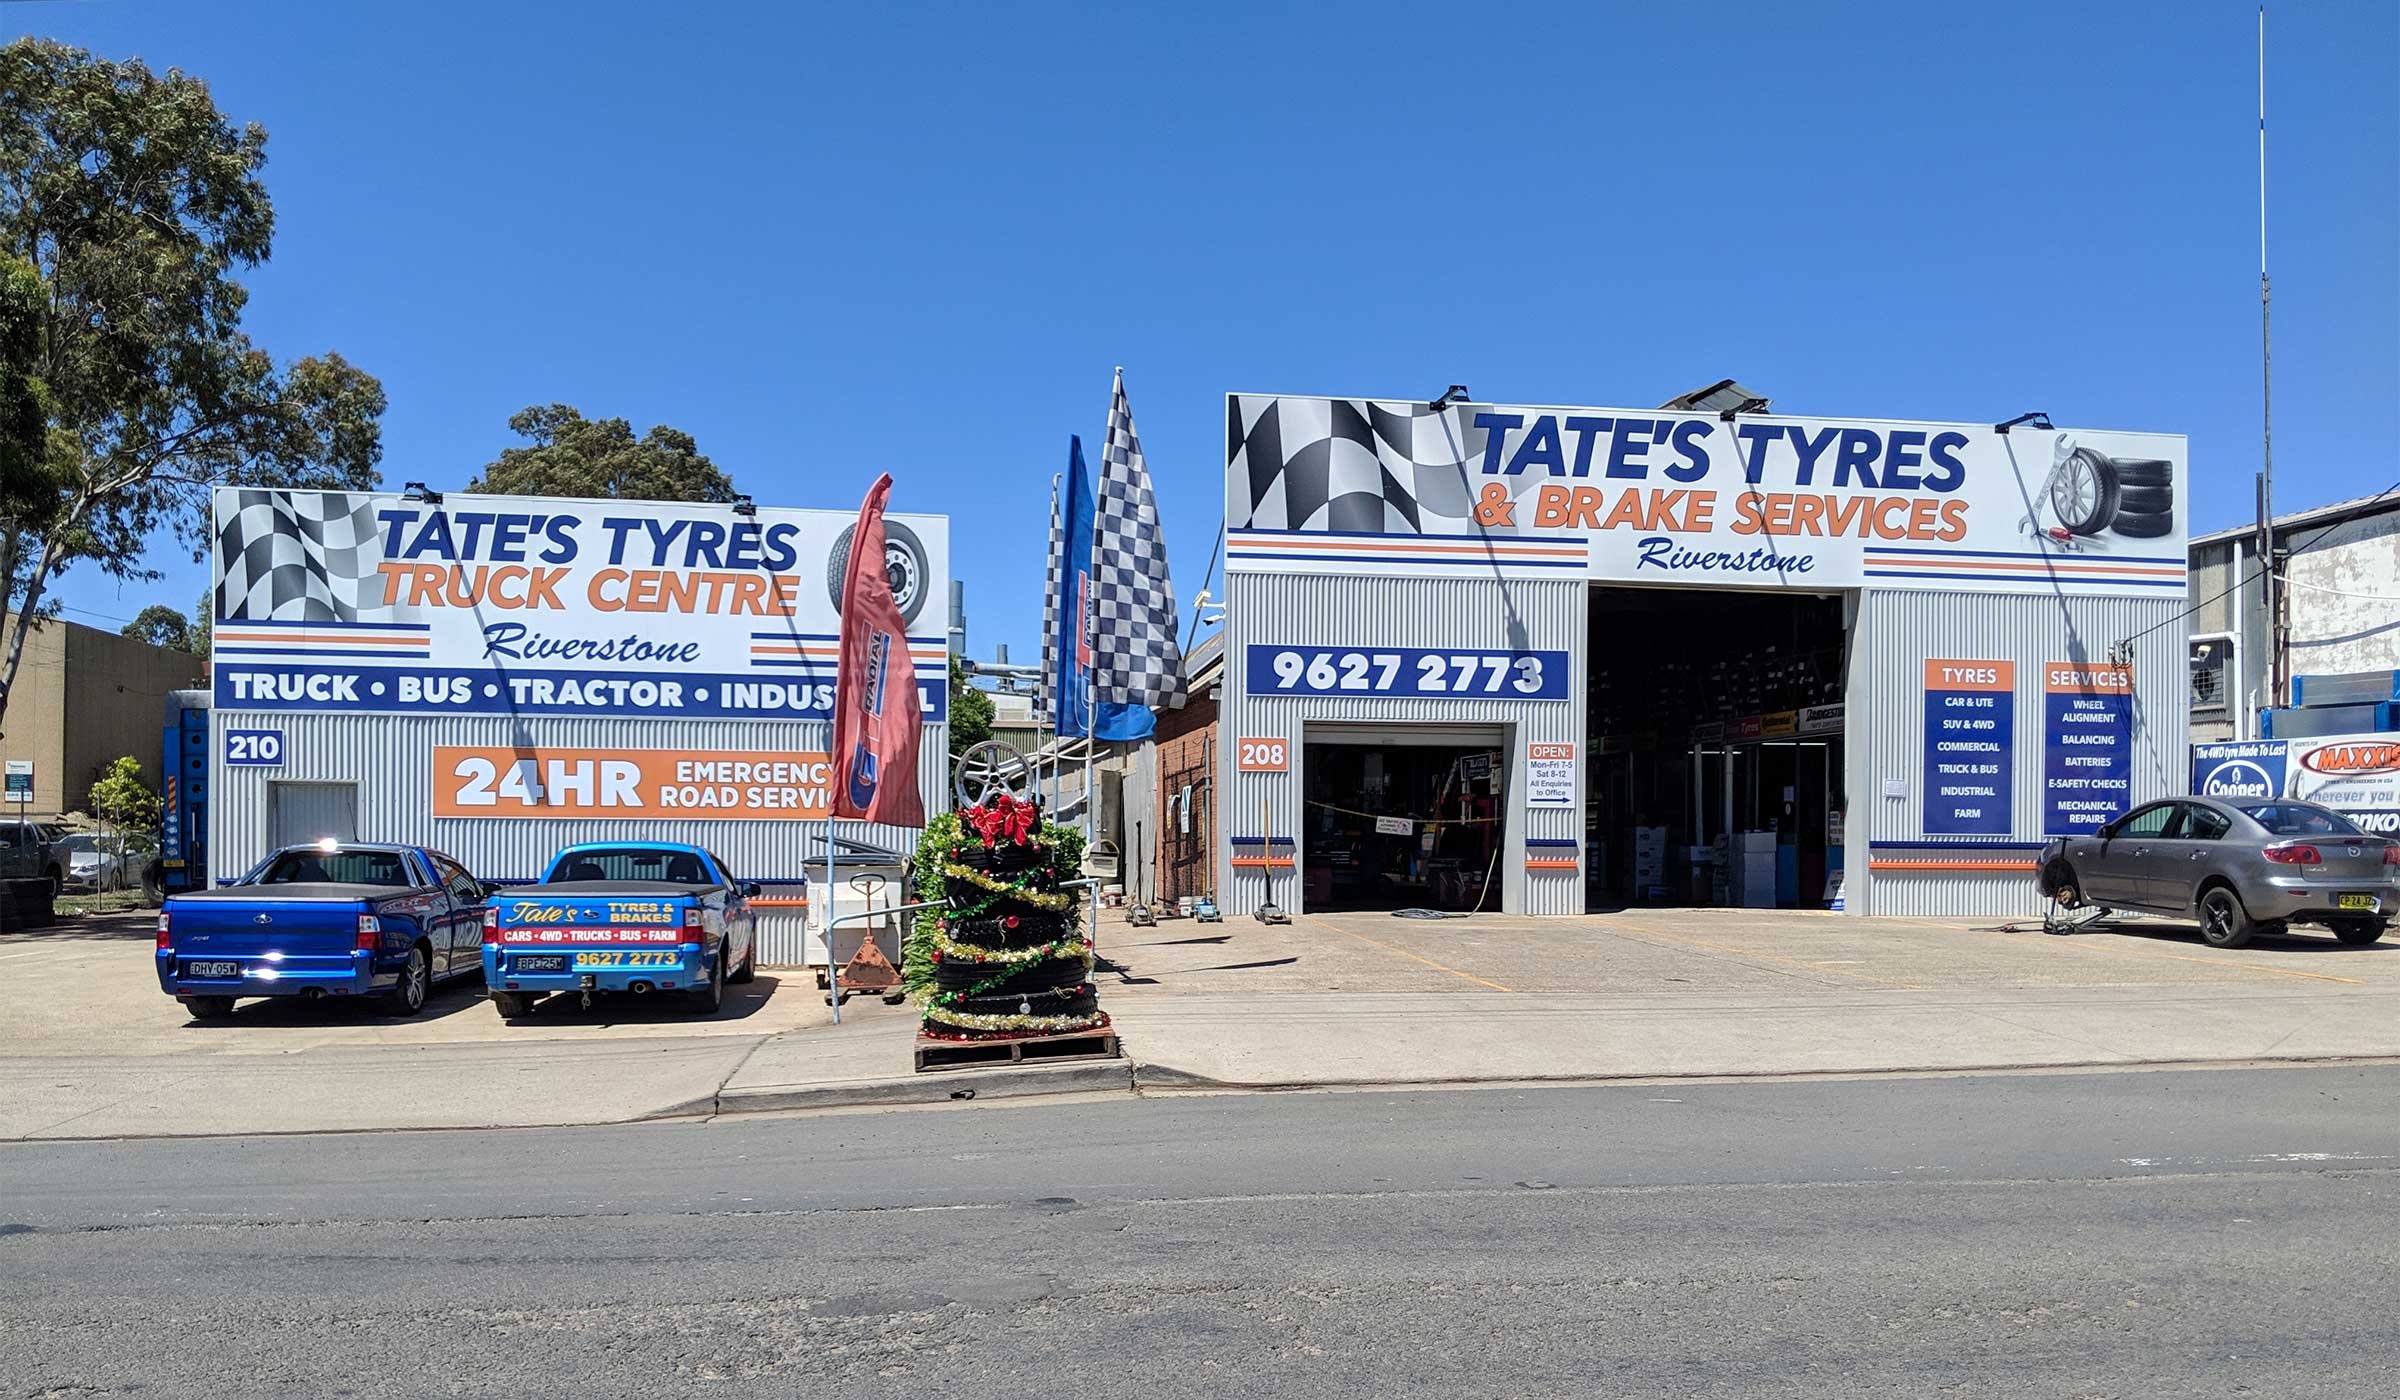 Tate's Tyres Brake Services